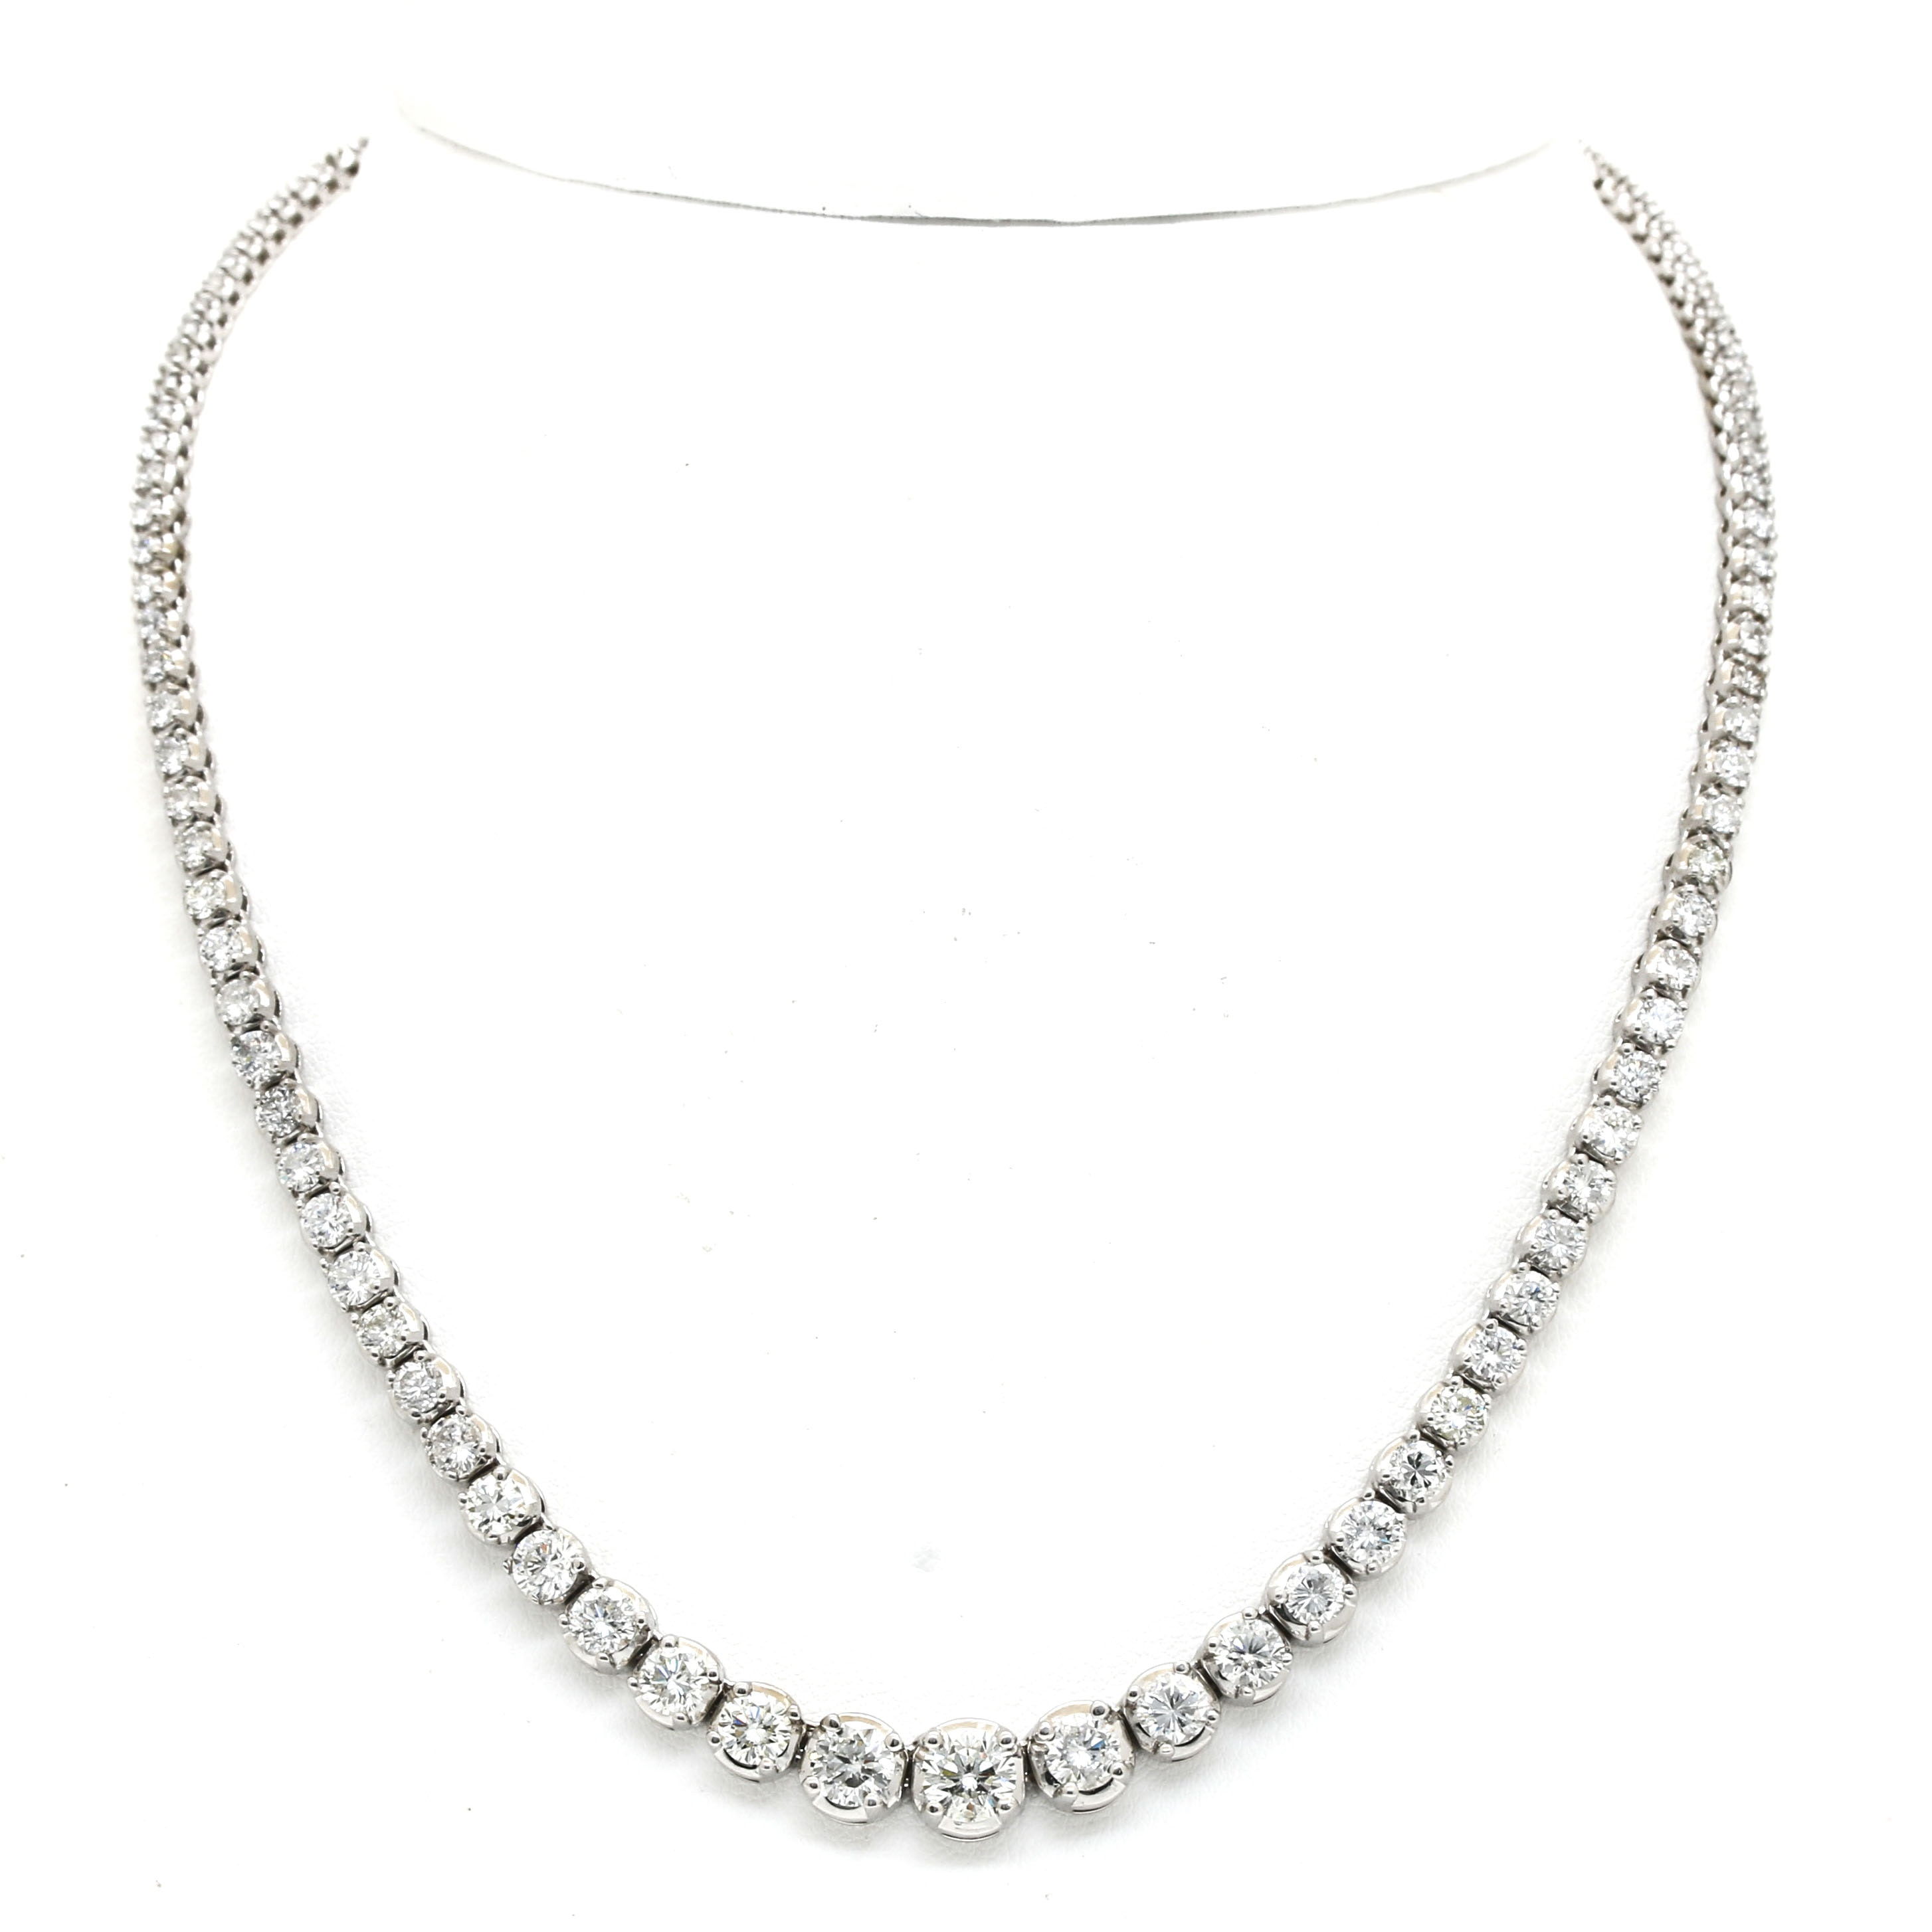 14k White Gold 990 Ctw Diamond Graduated Tennis Necklace. Tassel Necklace. Handcrafted Beaded Jewelry. Compression Anklet. Stacked Rings. Mandala Necklace. Mark Patterson Engagement Rings. Wedding Band Sets. Screw Back Stud Earrings